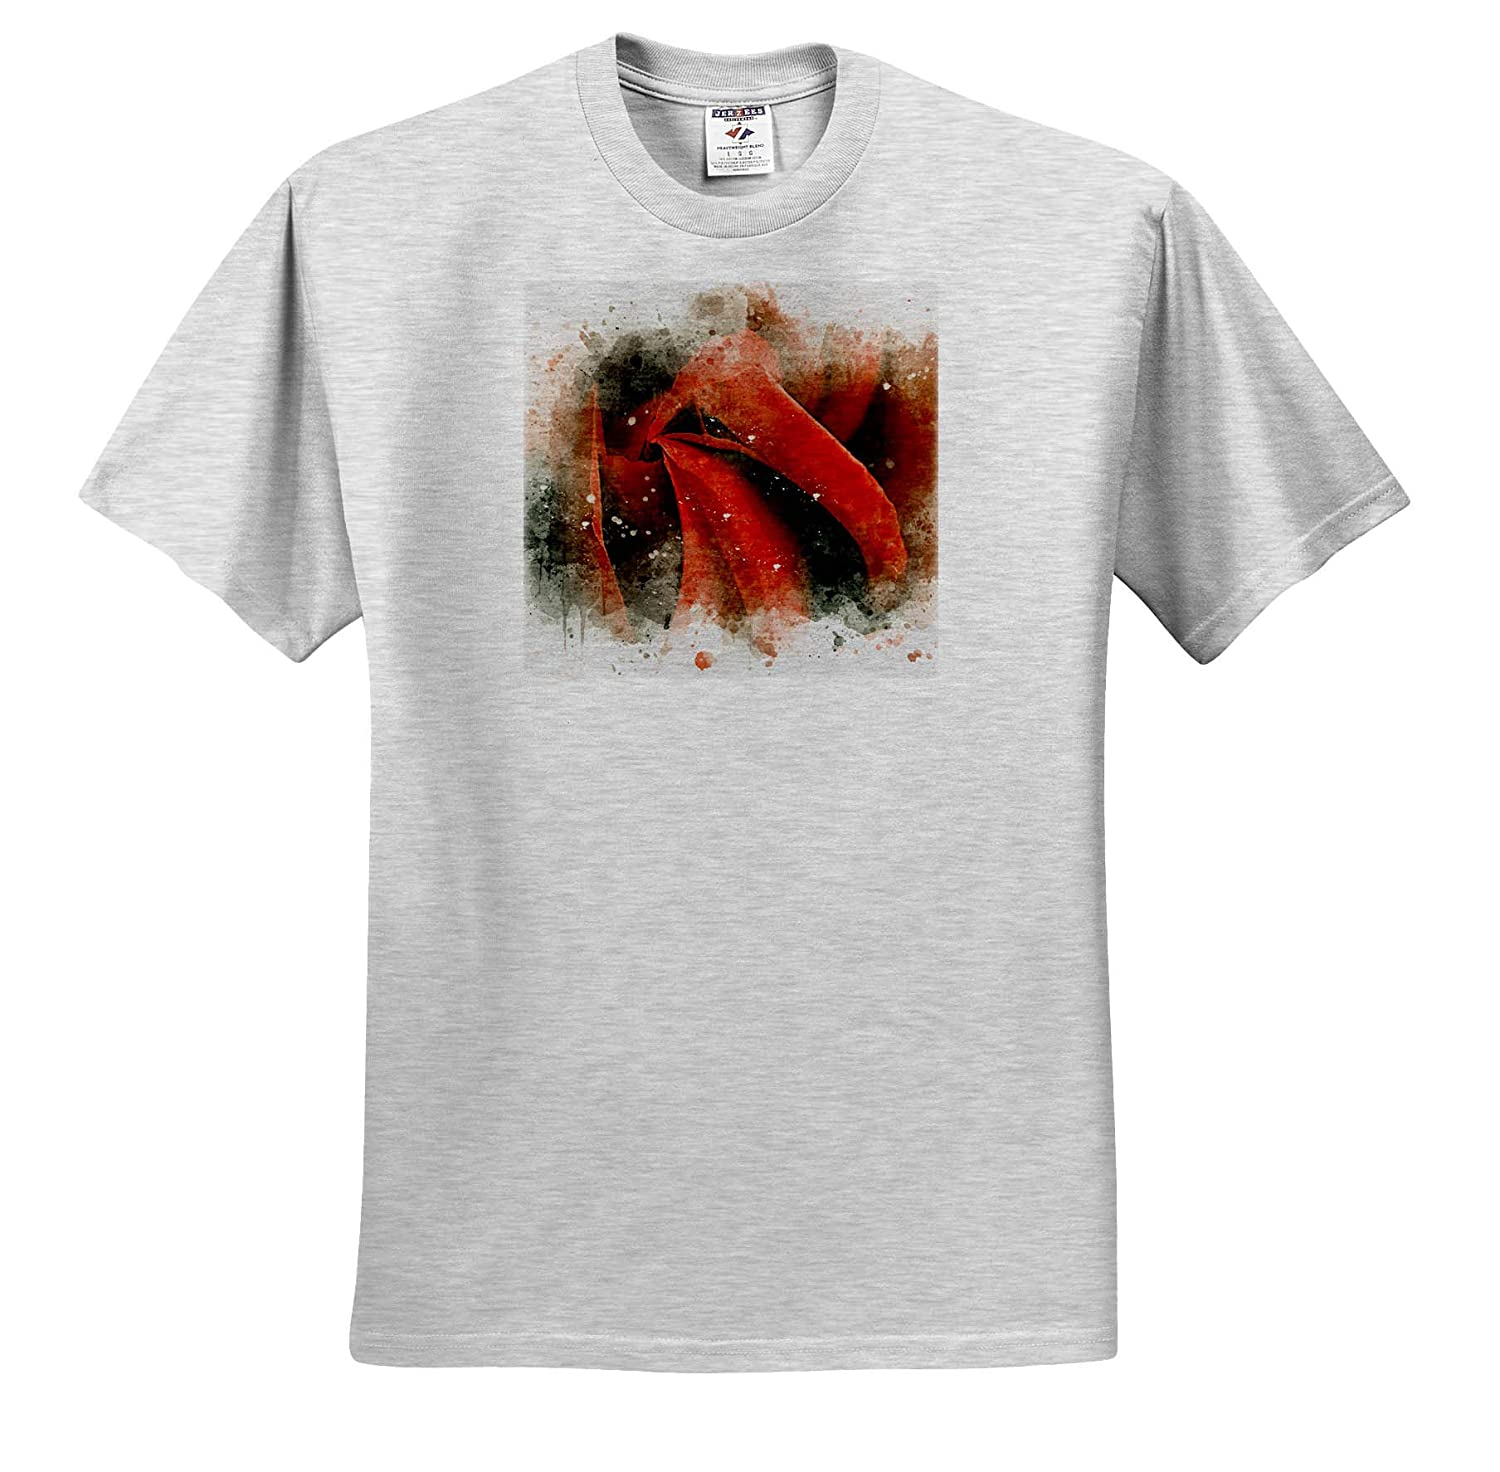 3dRose Anne Marie Baugh Image of Watercolor Red Rose Art ts/_318659 Adult T-Shirt XL Impressionist Mixed Media Art